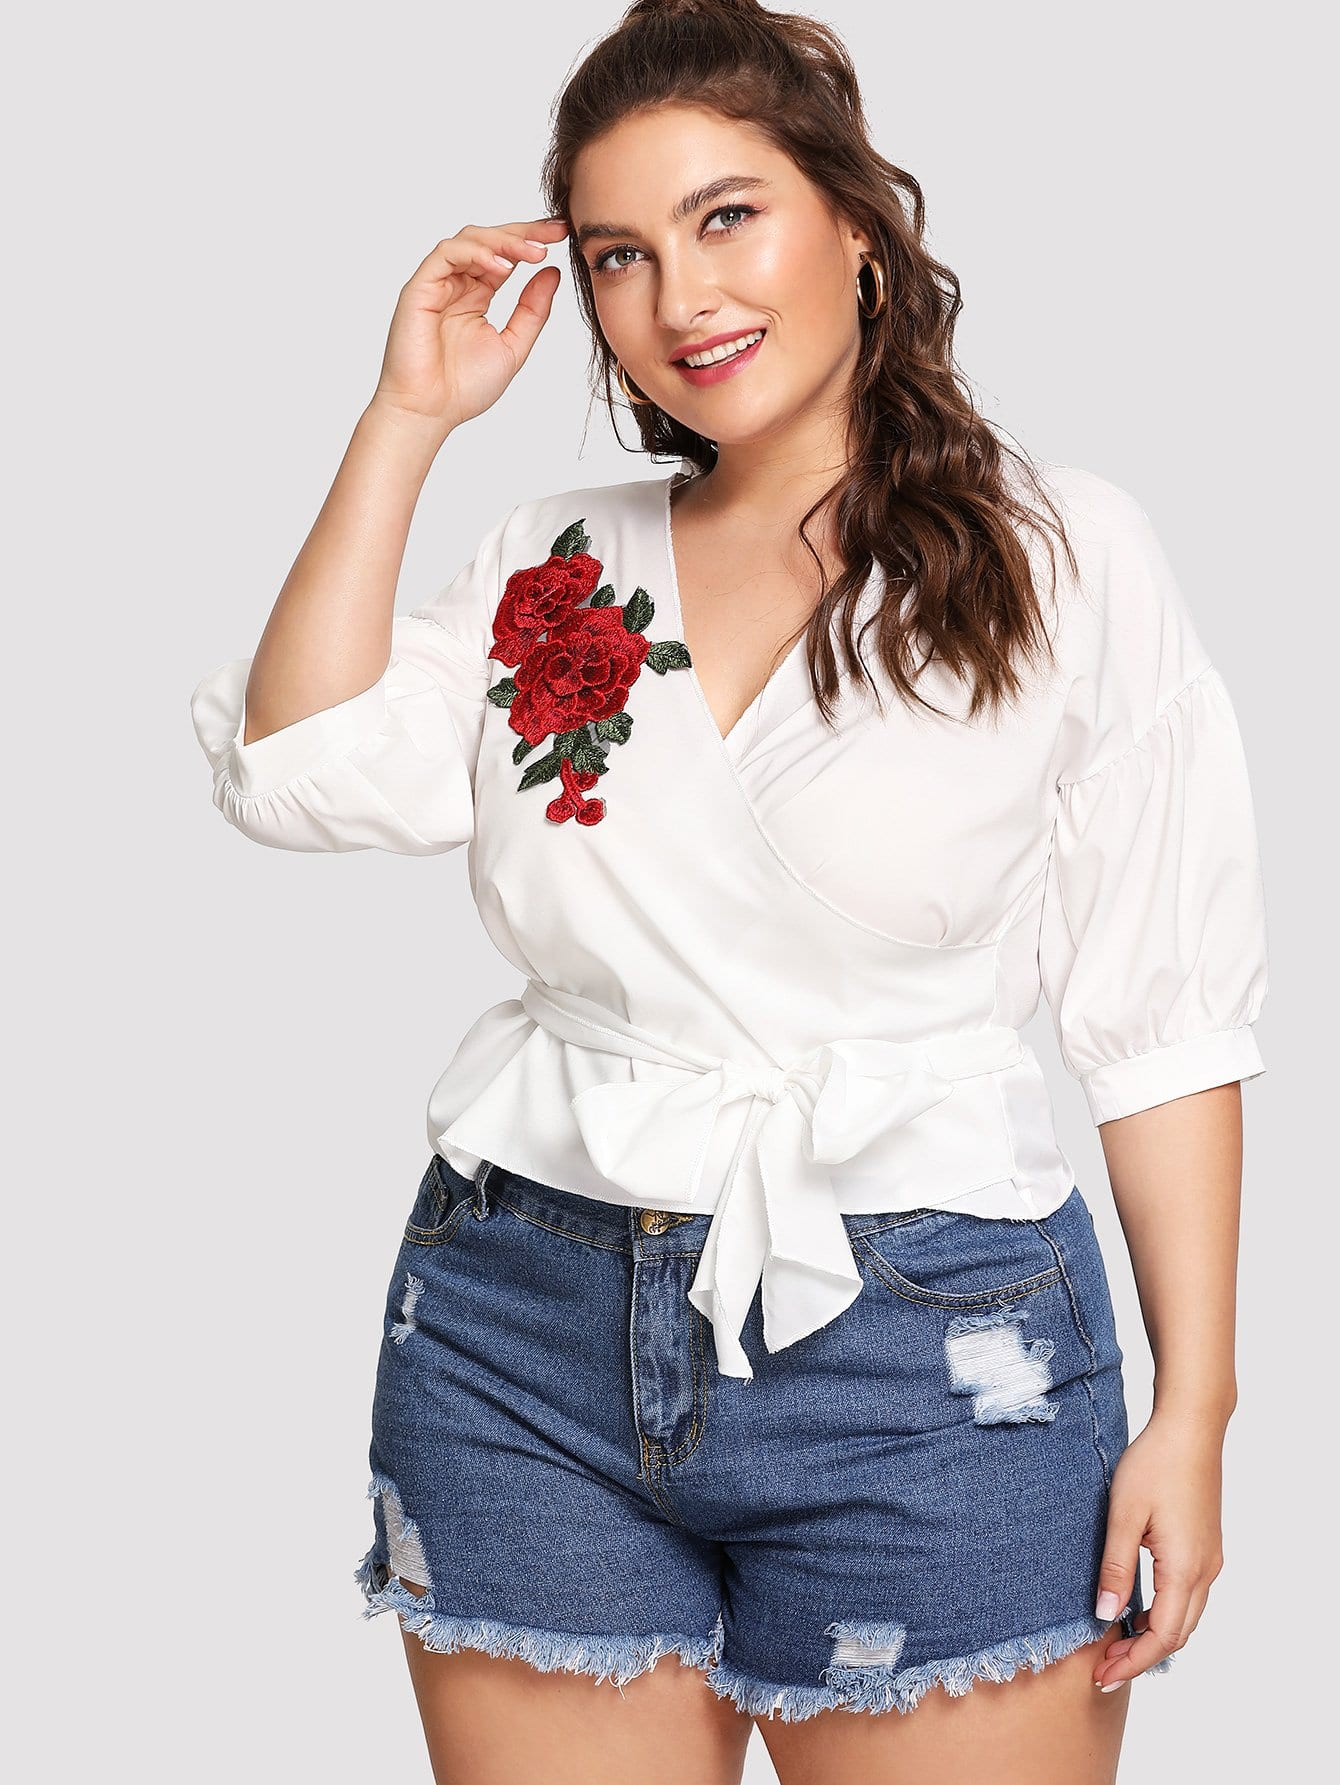 Rose Embroidery Knot Front Top embroidery applique knot back fitted